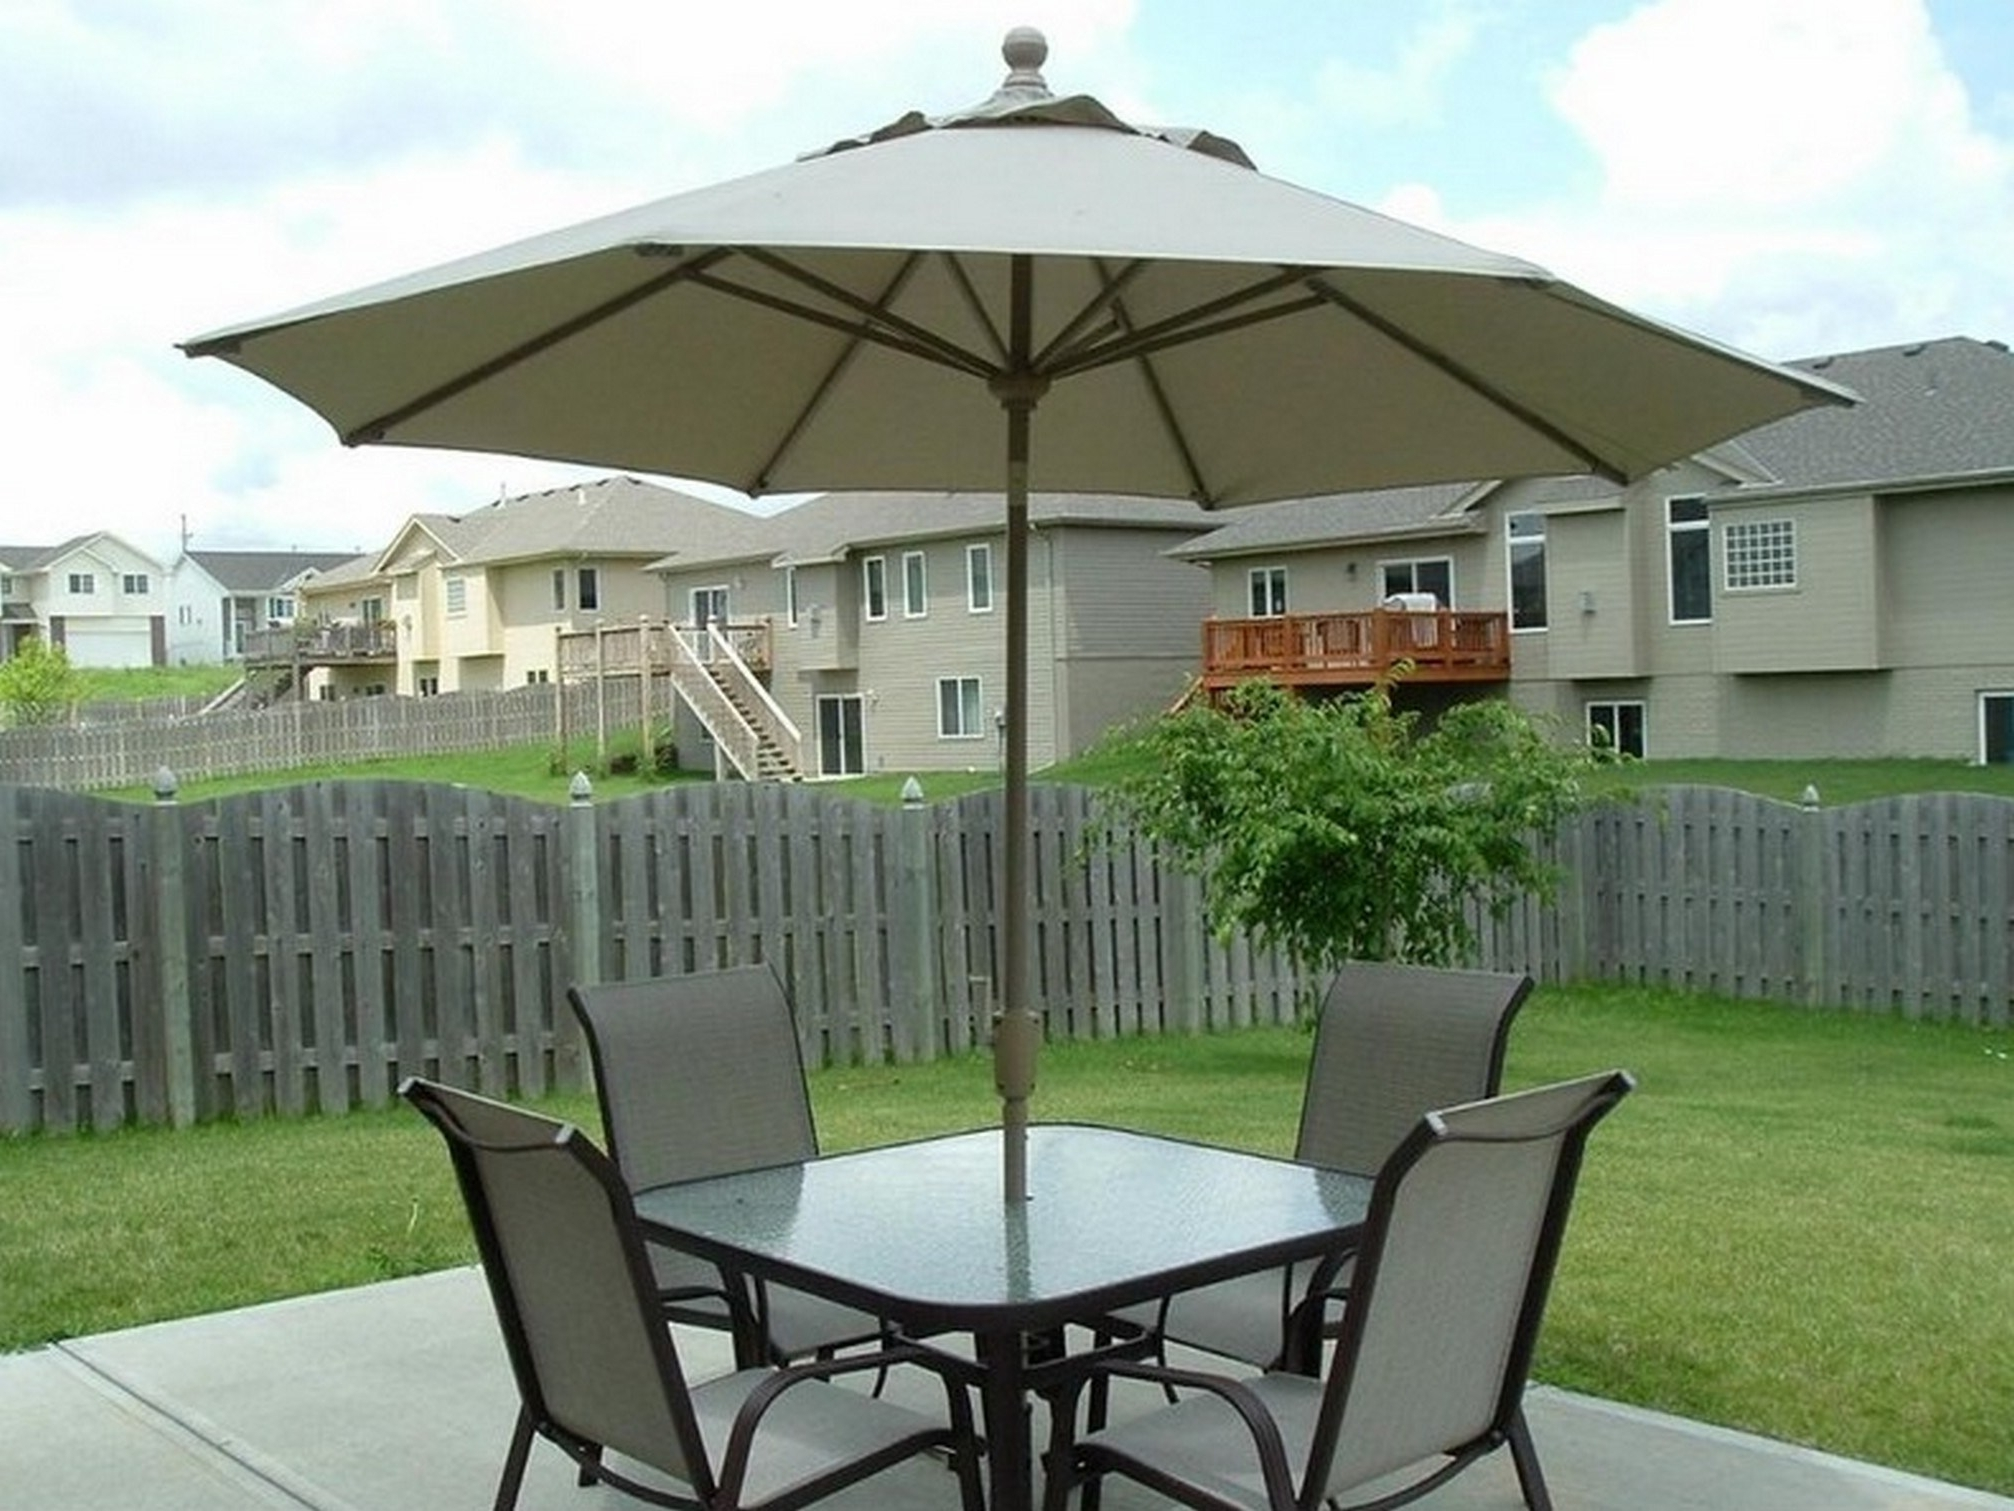 Patio Table Sets With Umbrellas Inside Trendy Splendent Affordable Patio Furniture Sets Discount Wicker Patio (View 16 of 20)